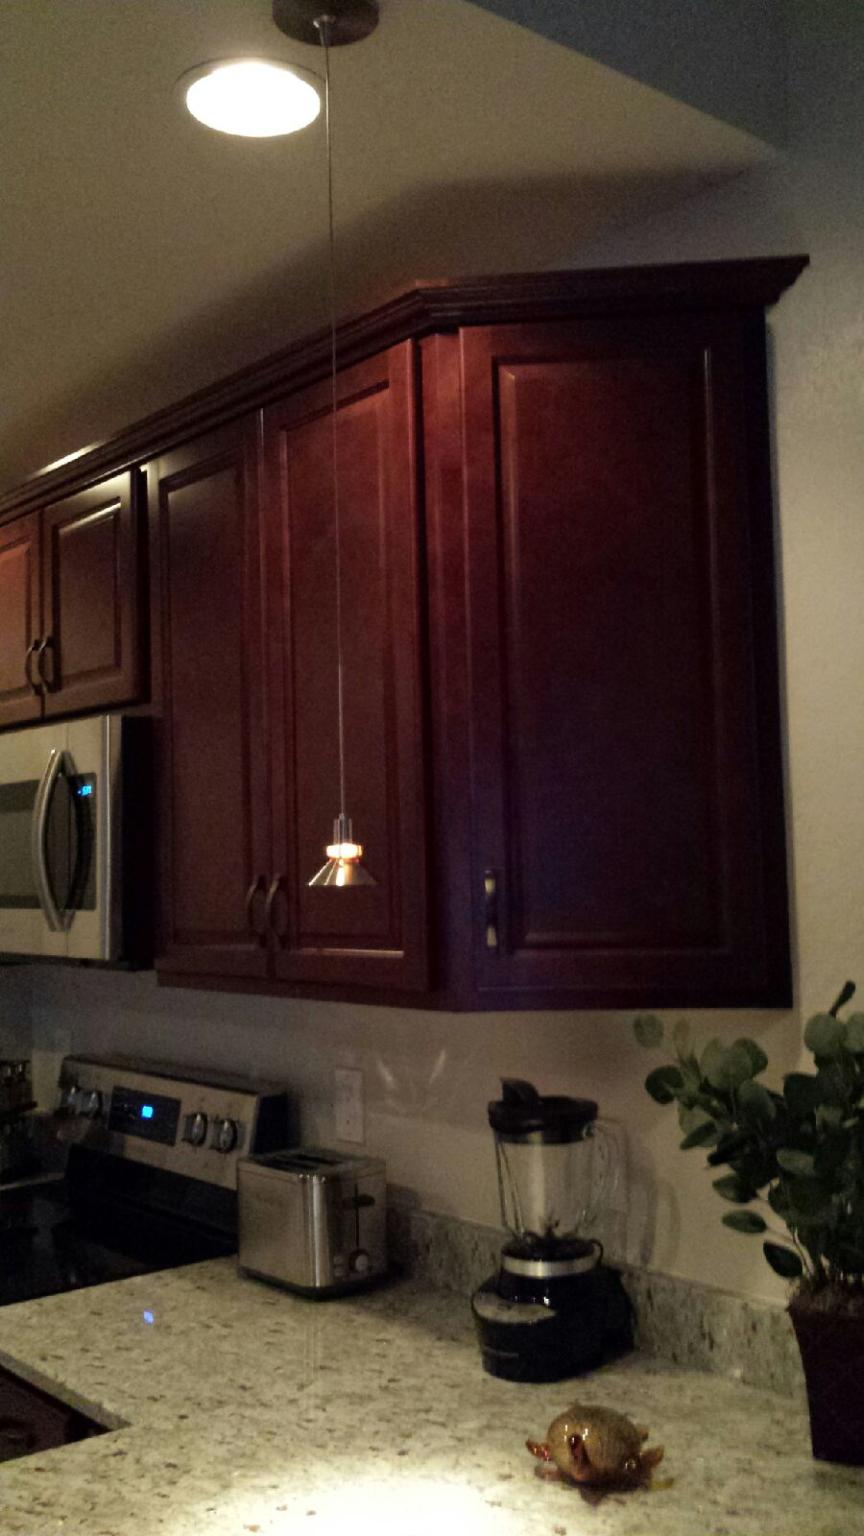 KITCHEN REMODEL (AFTER) PHOTO 4